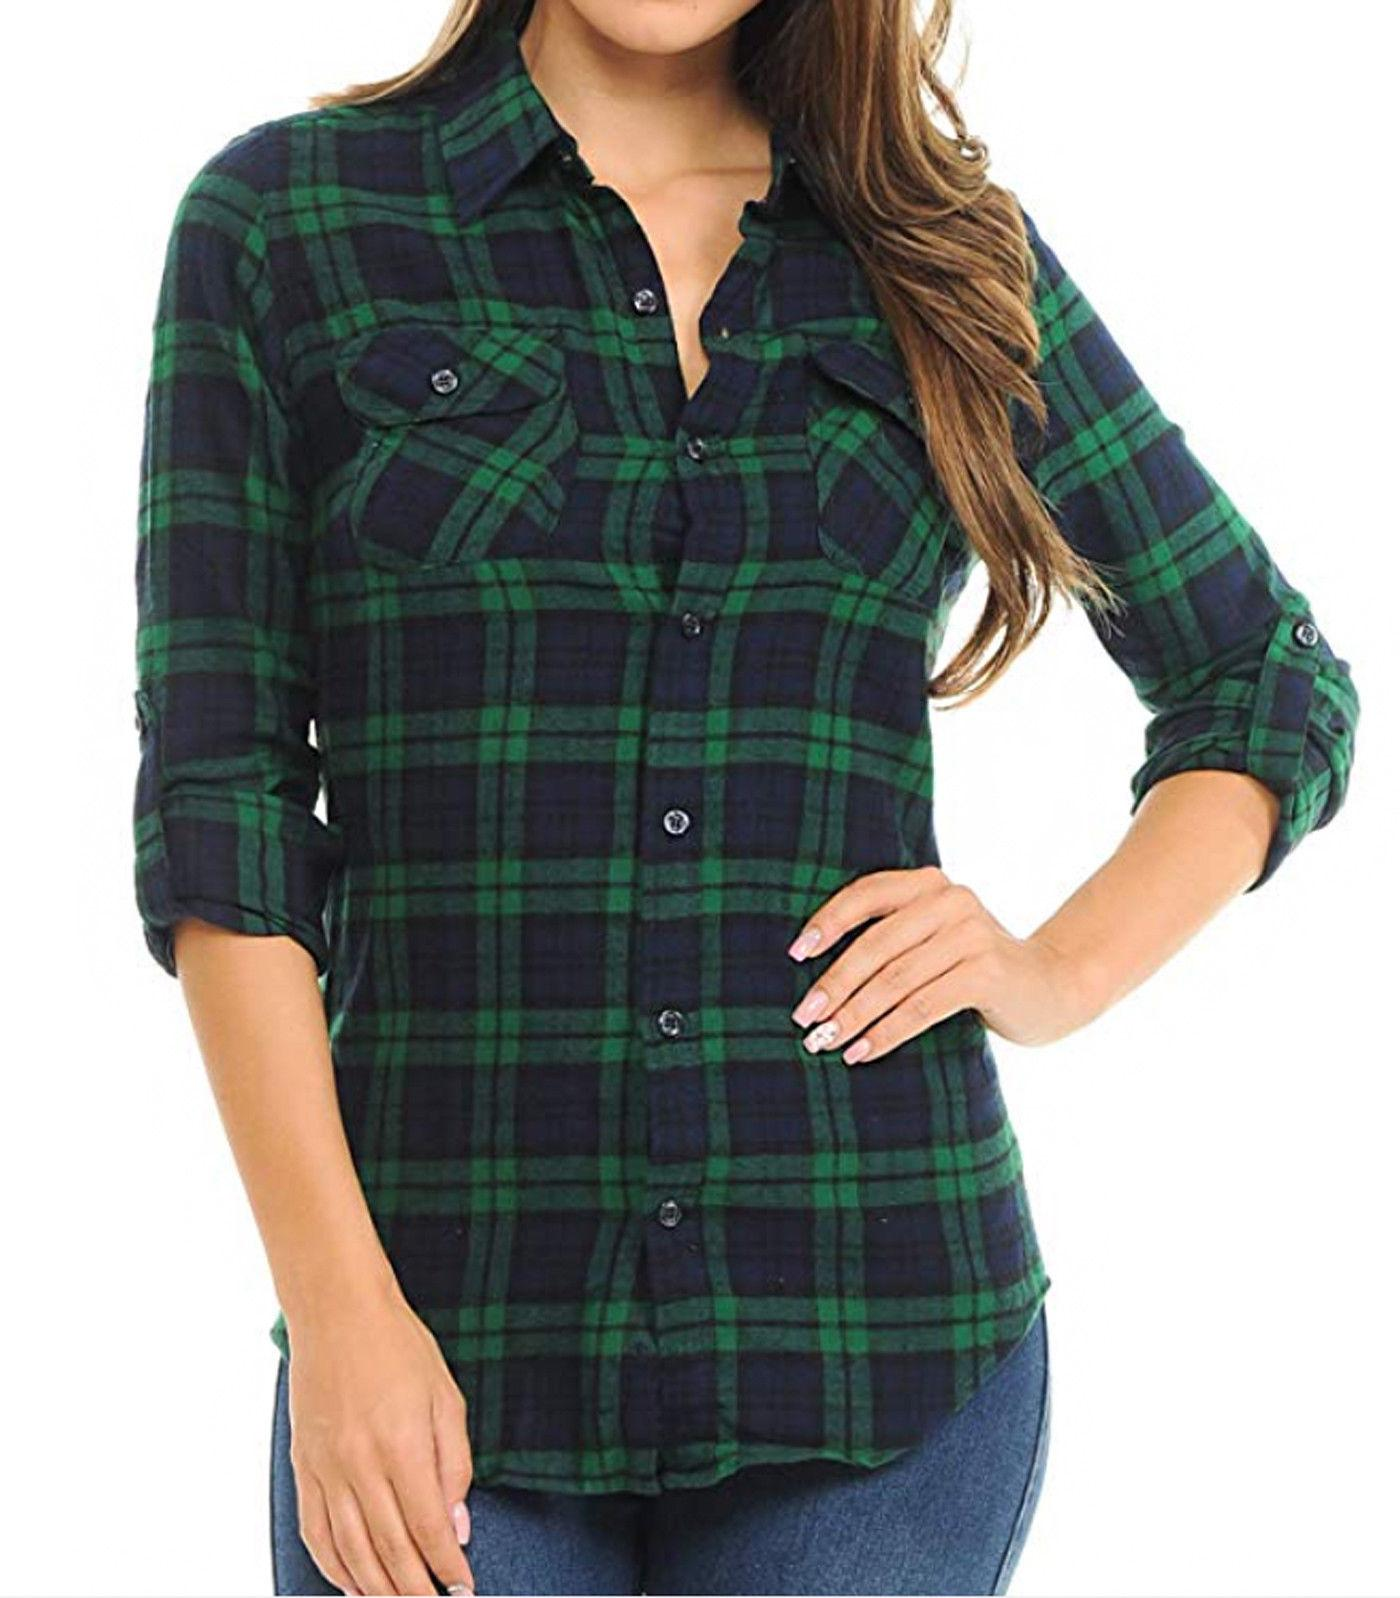 Inso Women's Plaid Button Down Shirts